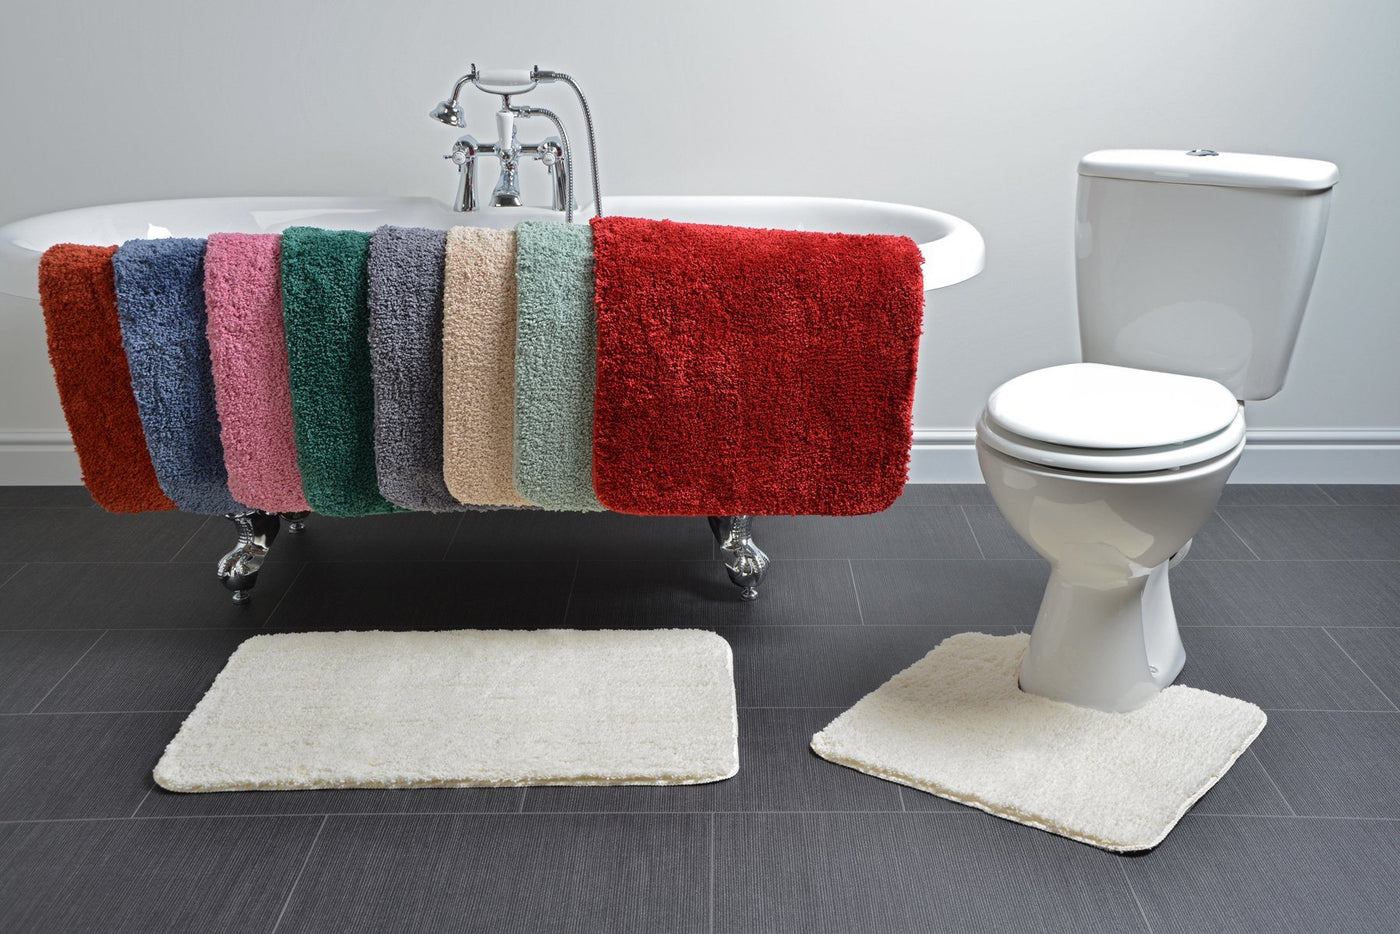 microfibre bath mats on the side of a bath